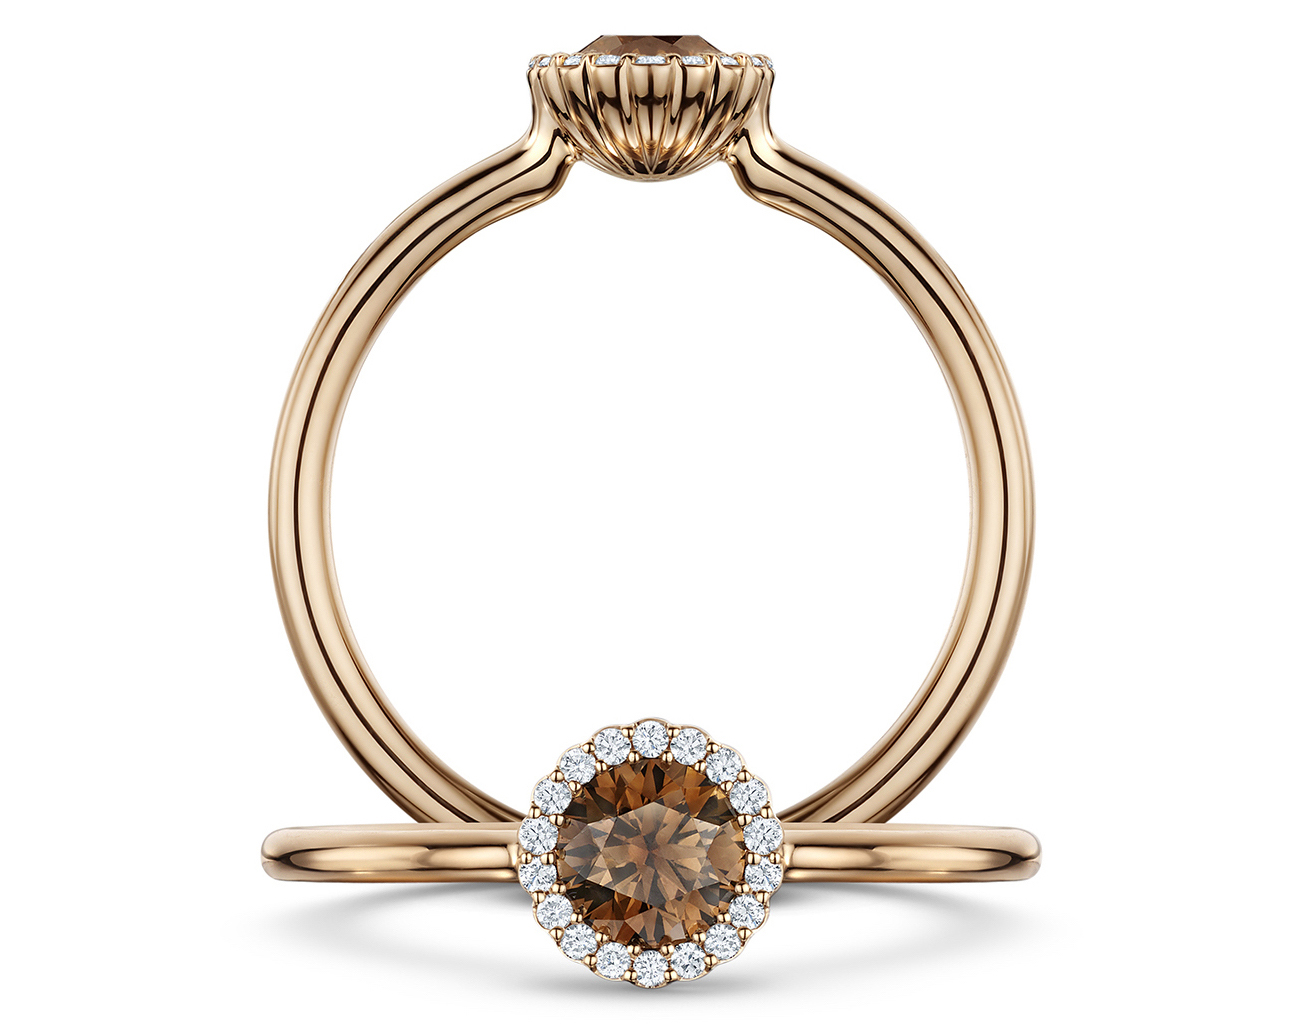 Andrew Geoghegan Chocolate Cannelé Ring at Phillip Stoner The Jeweller